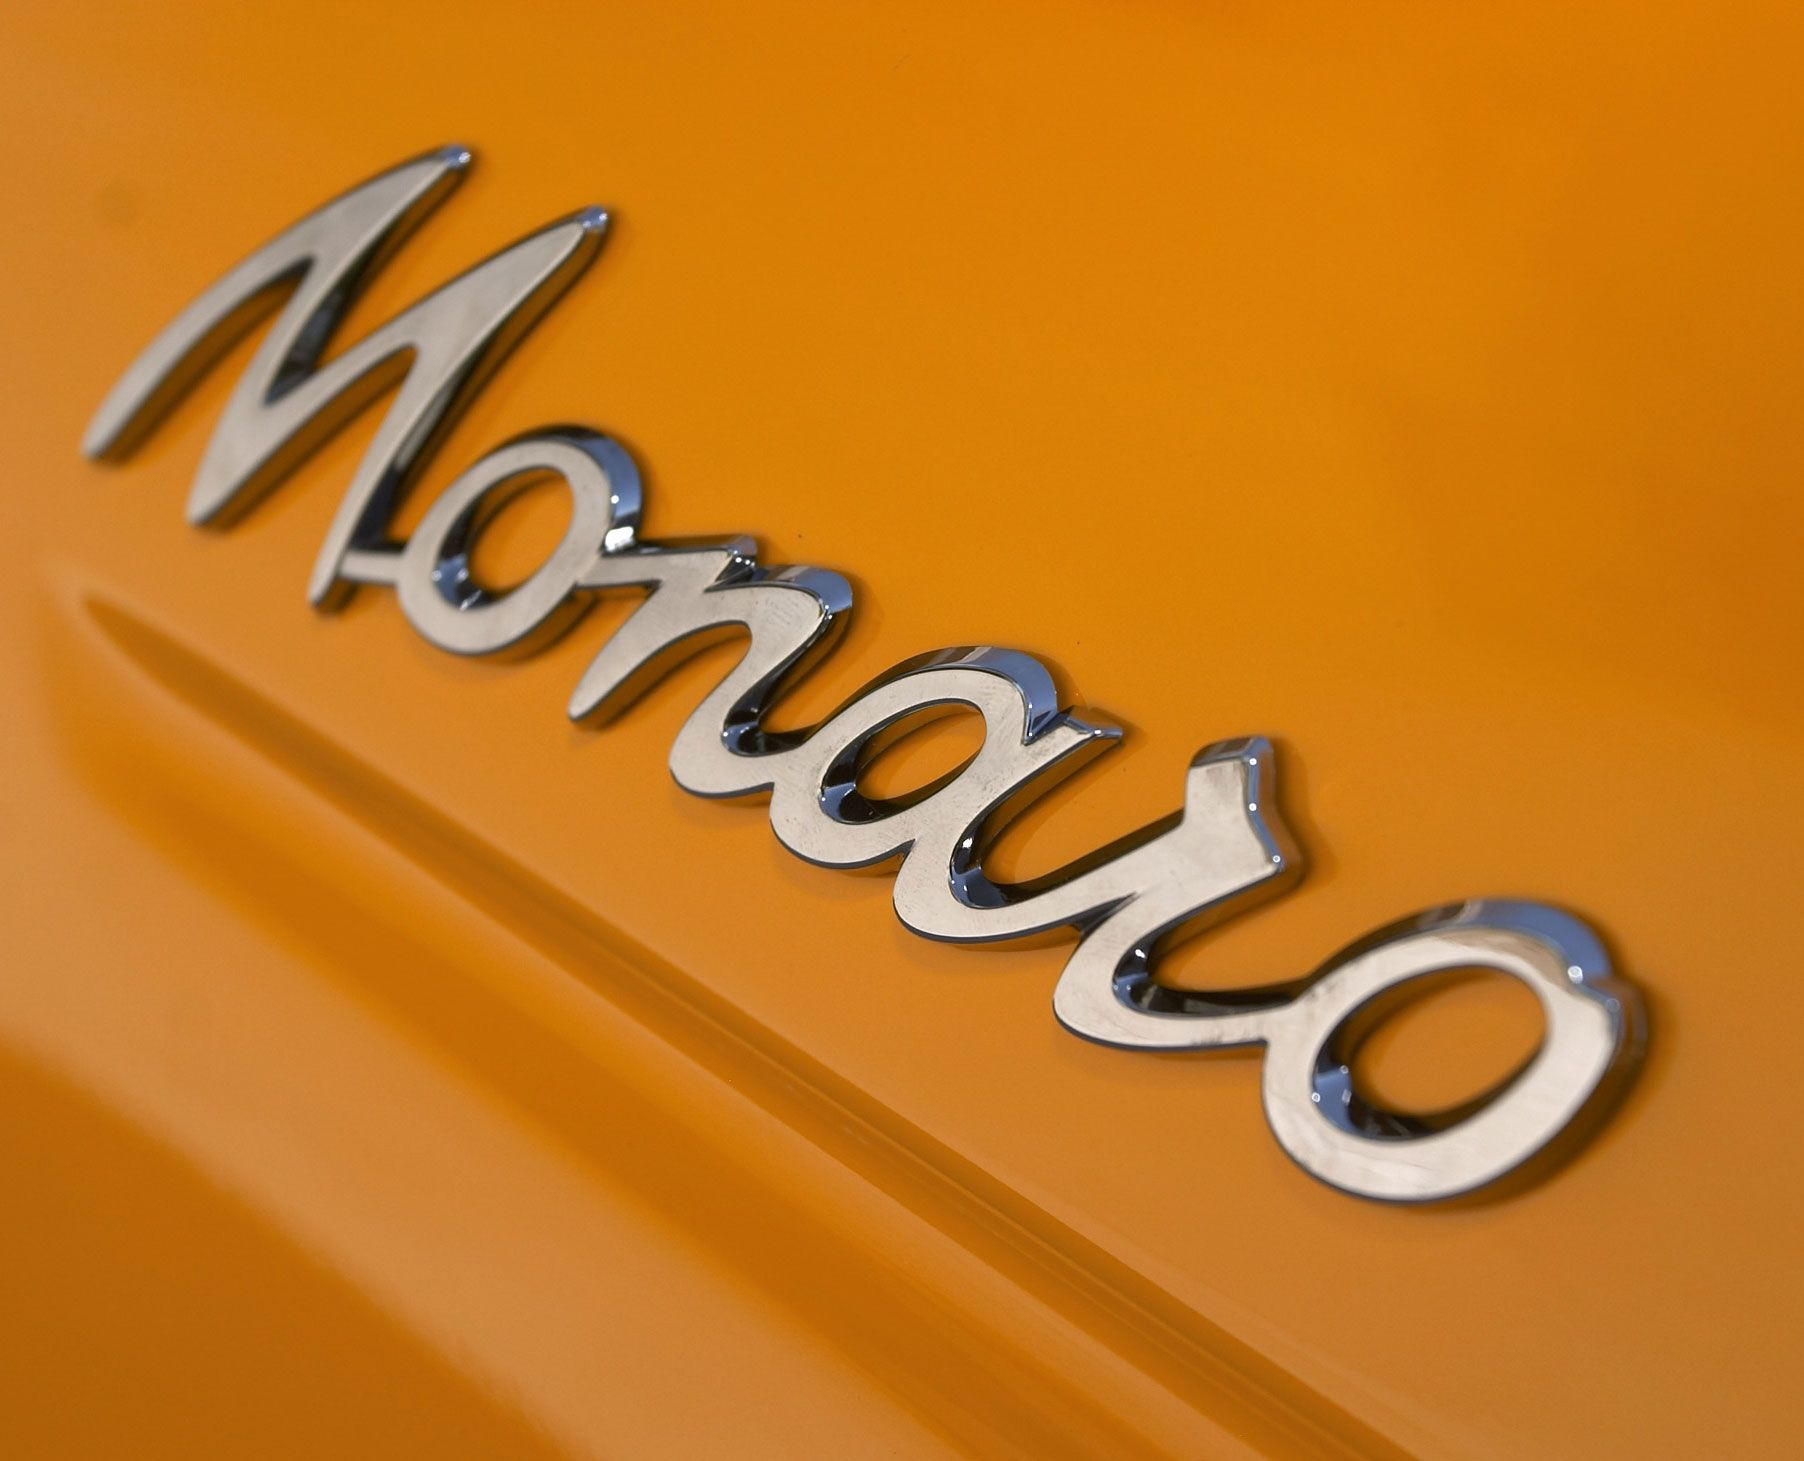 Classic font for a classic car. Holden monaro, Classic